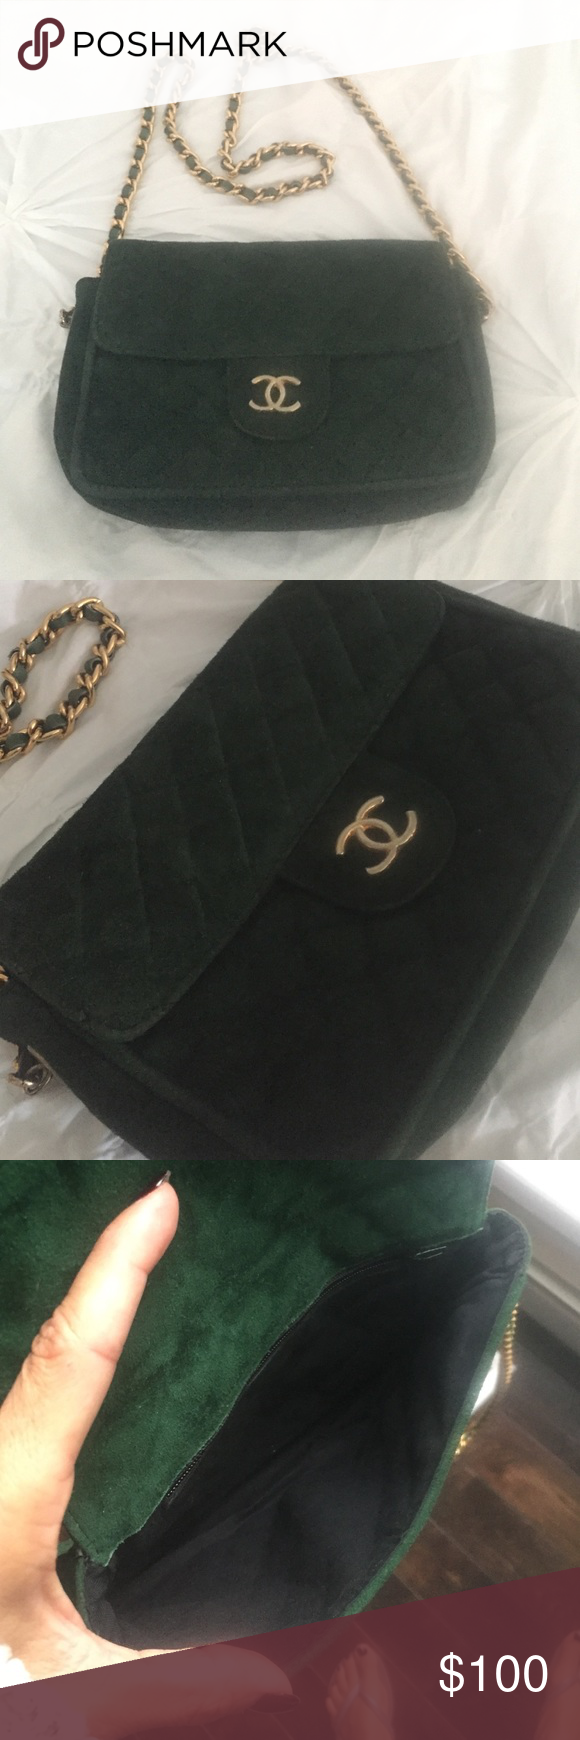 "Very vintage bag??? Extremely old Not sure what the deal is with this bag. The gold tone chain is pretty light weight. Extremely old piece in decent vintage condition.  6""x8""x2"" in size 20"" strap drop. No marking at all of any kind Still gorgeous and very wearable. A deep hunter green suede. Bags Shoulder Bags"